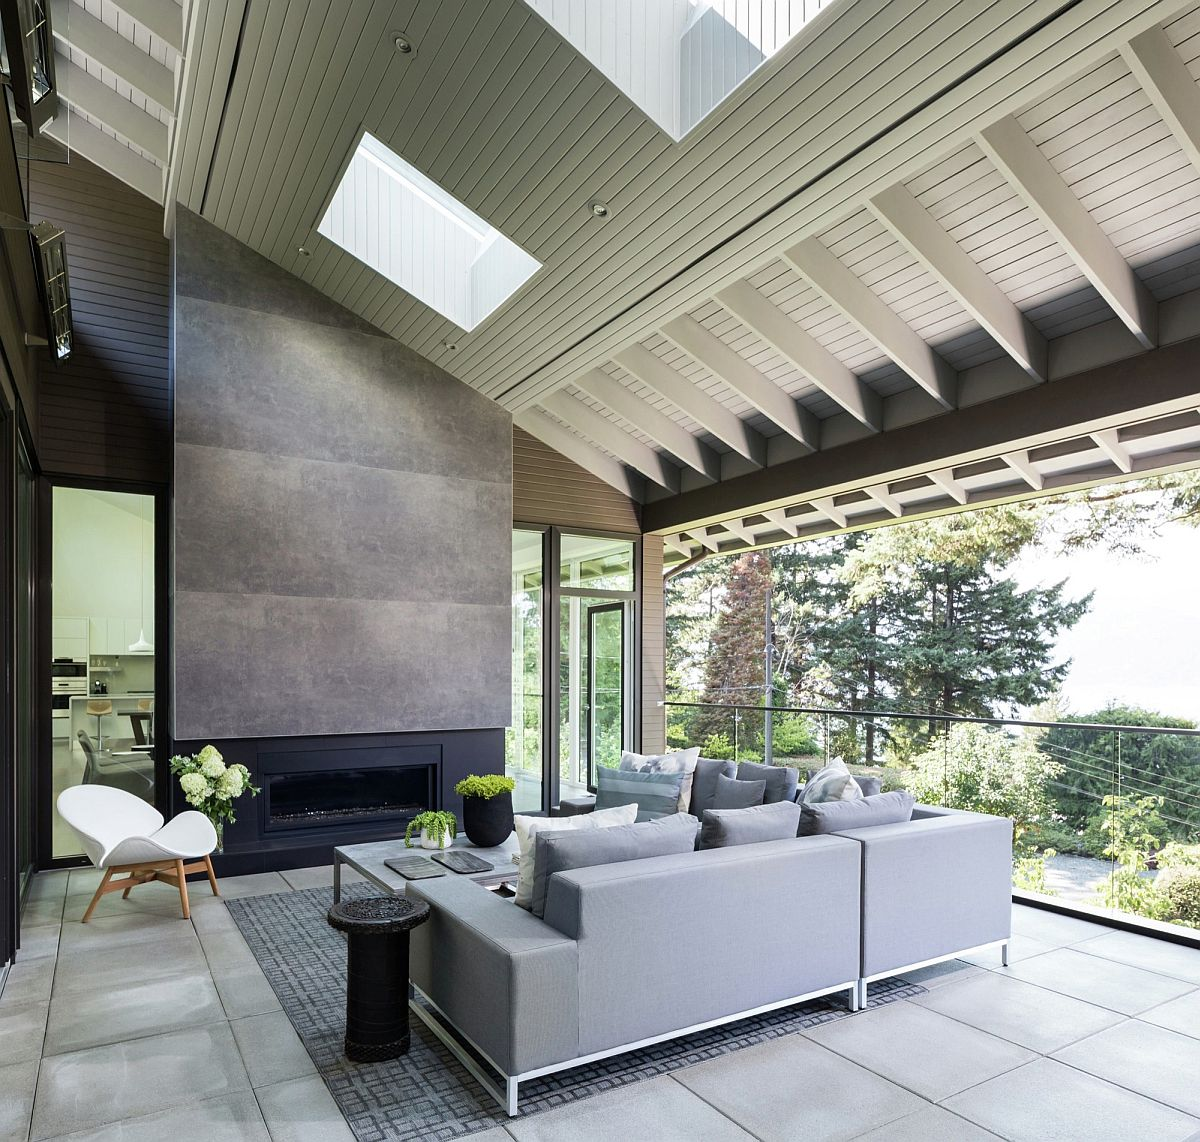 Vancouver Home By Randy Bens Architect Extends Its Living